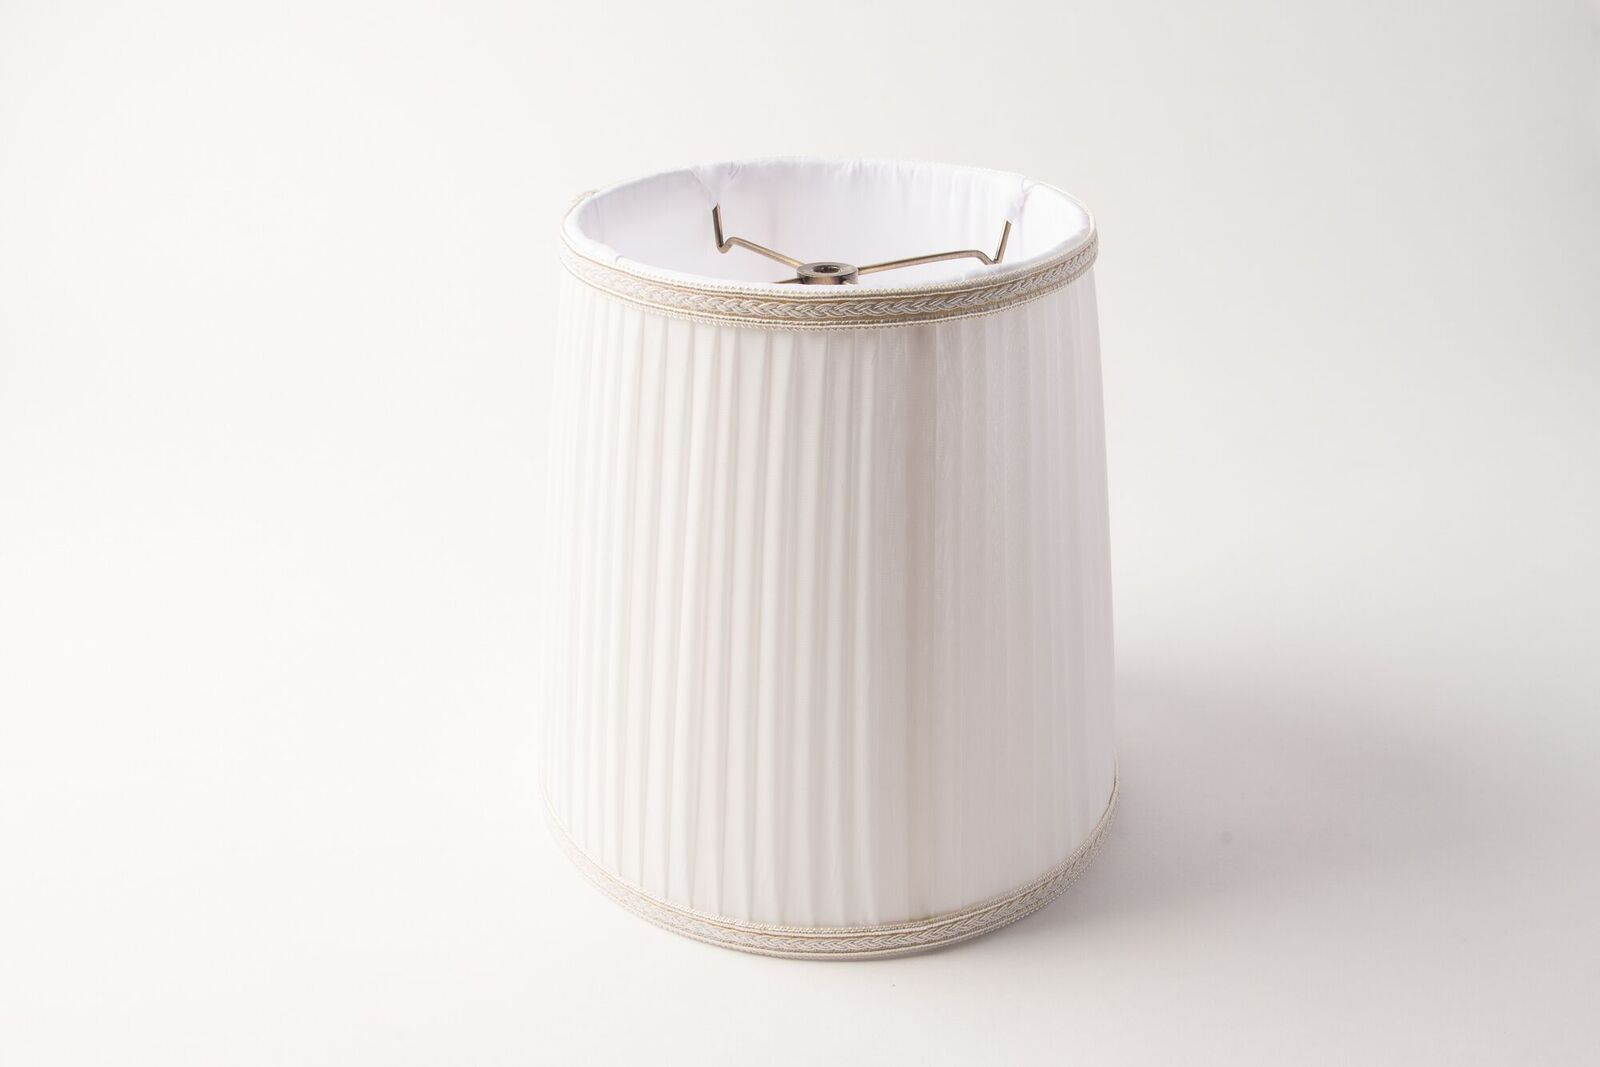 https://www.hotel-lamps.com/resources/assets/images/product_images/Drum_Side_Pleat_White.jpeg